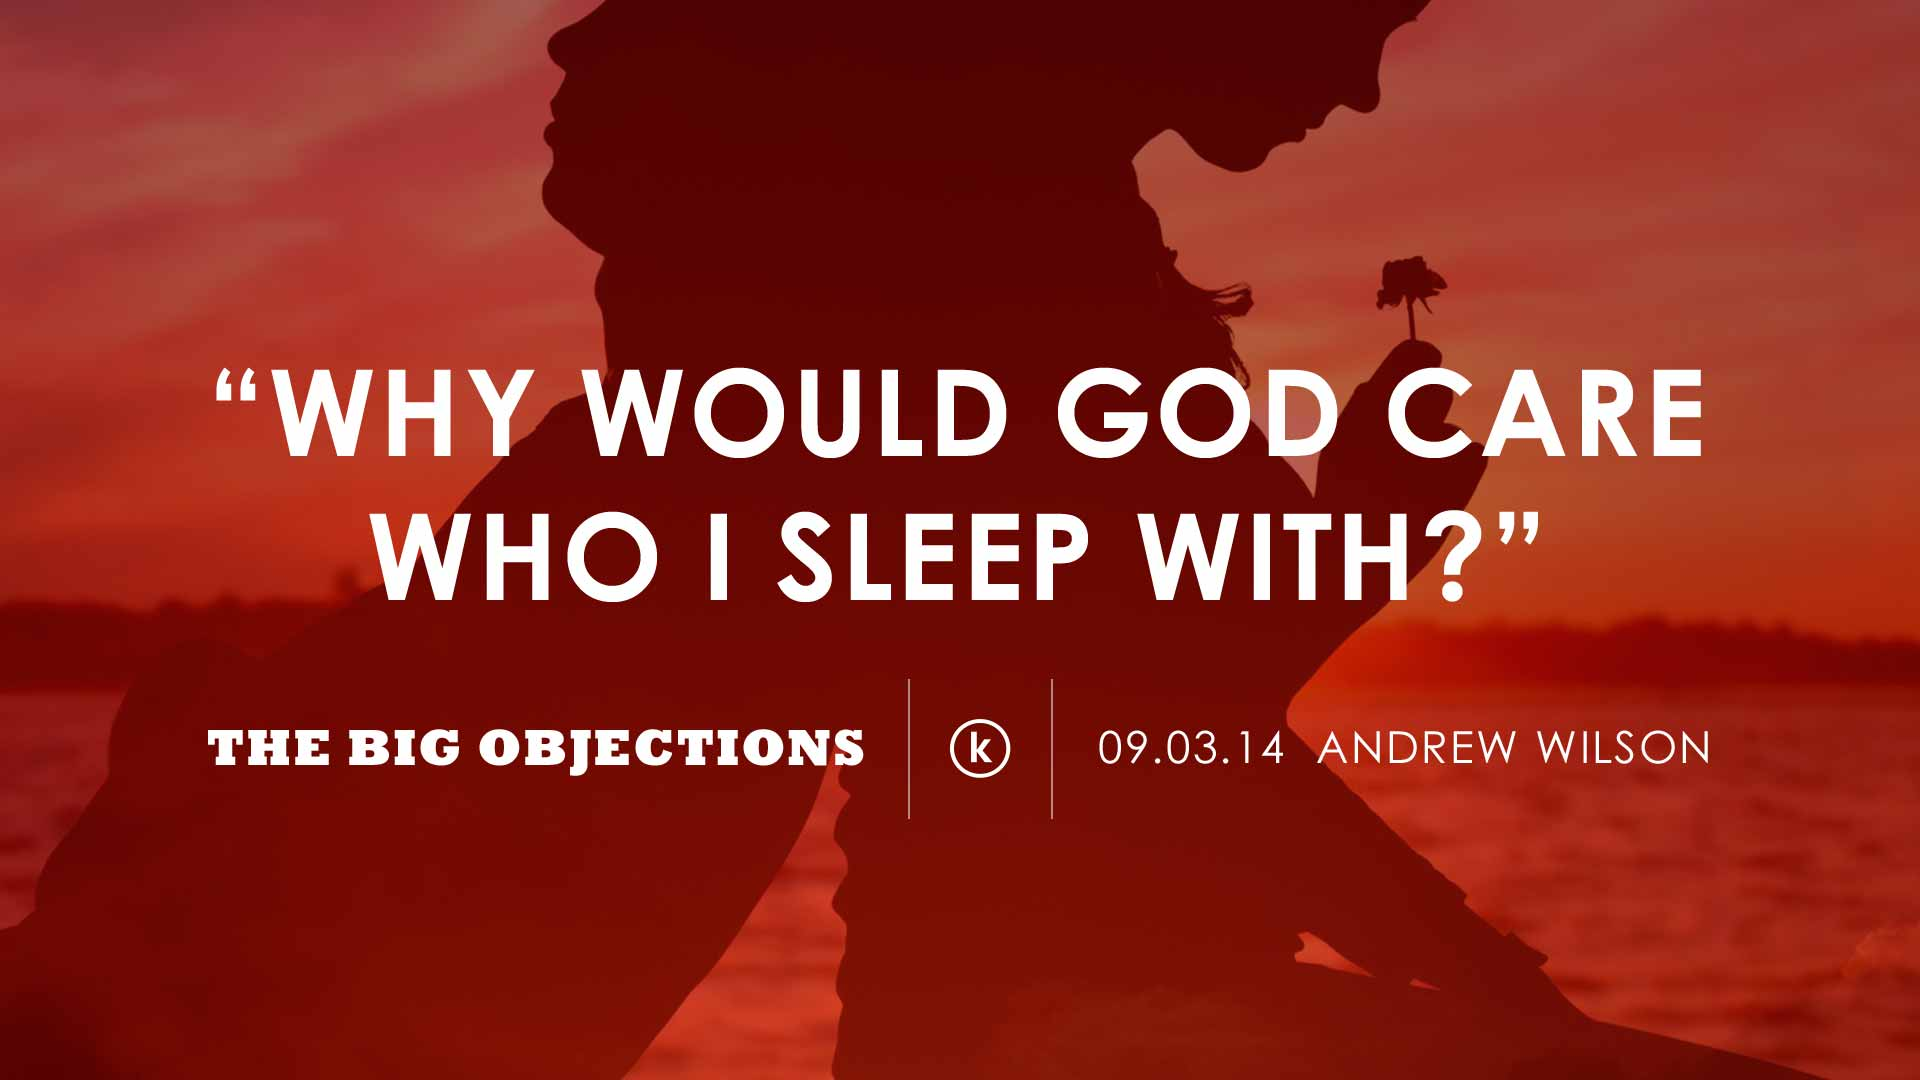 Why would God care who I sleep with?